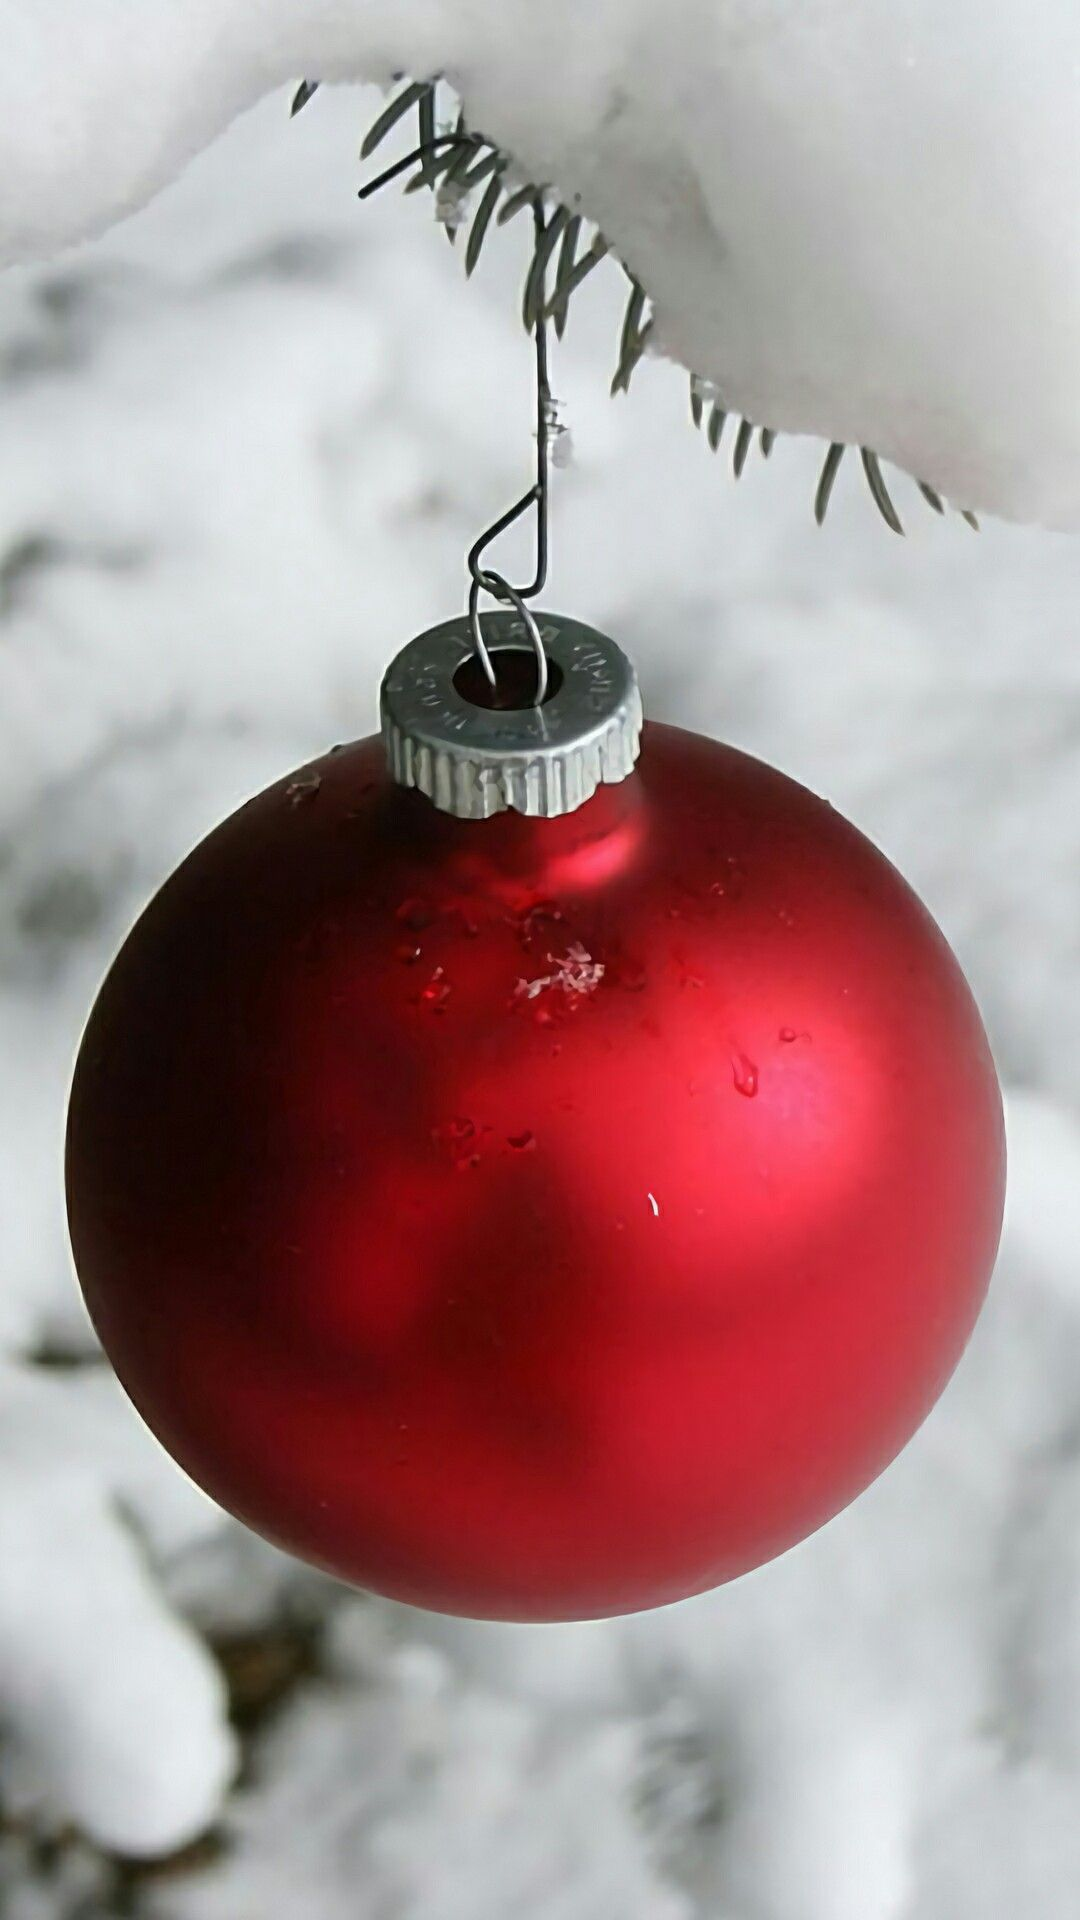 Pin by twinhale on wallpapers pinterest red christmas wallpaper